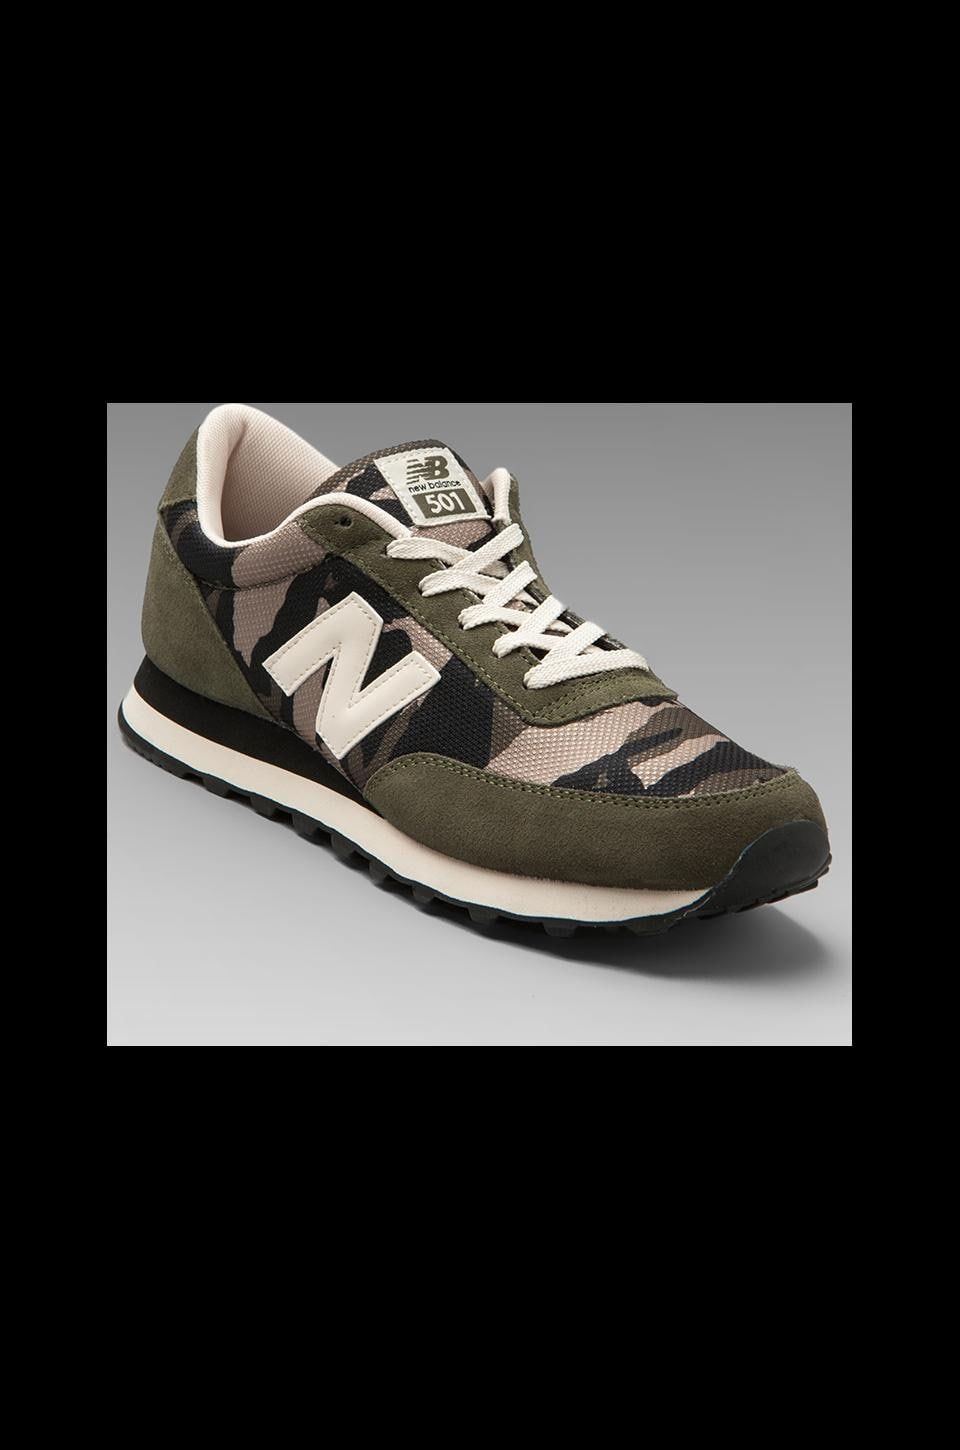 New Balance Camo ML501 in Green